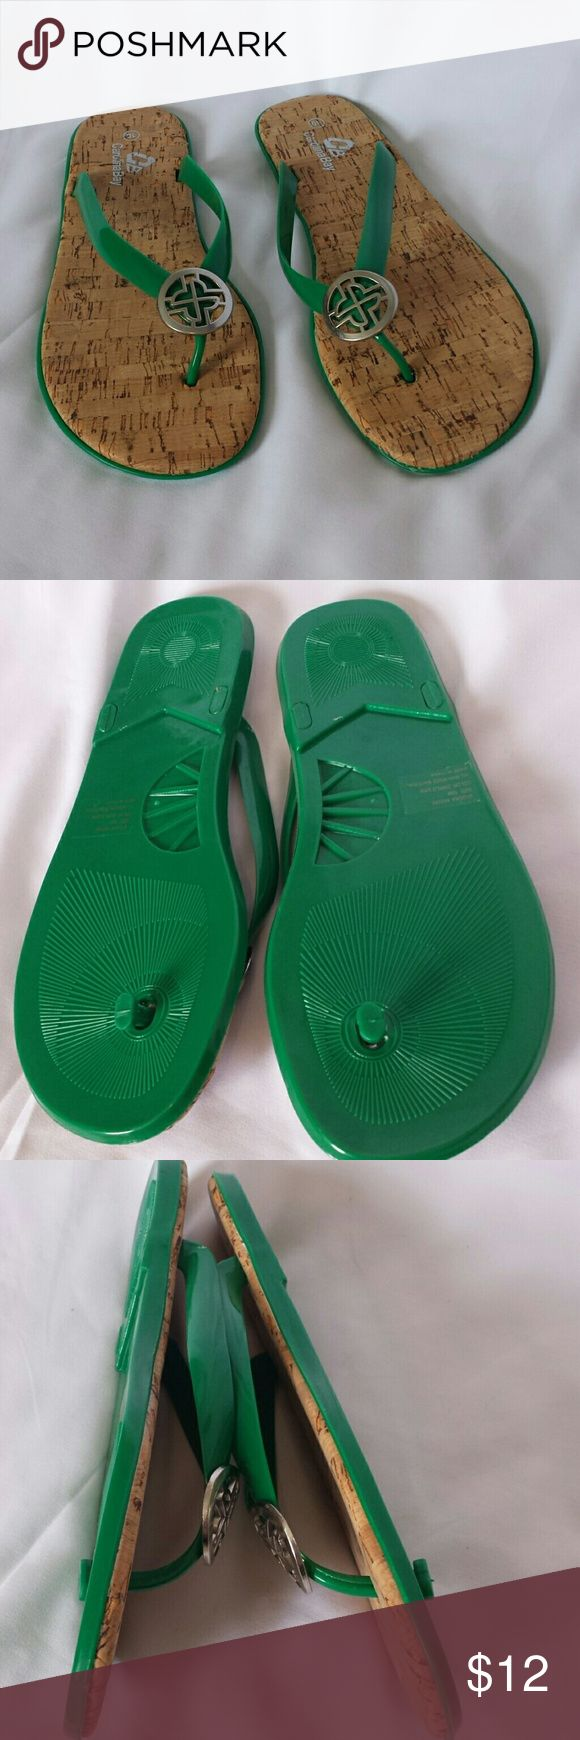 Green Flip Flops by Carolina Bay Size 10 Brand new! Never worn! Super sweet little green cork bottom flip flops with silver toe embellishment. Perfect for maxi's, a day at the beach, or casual with shorts! Shoes Sandals